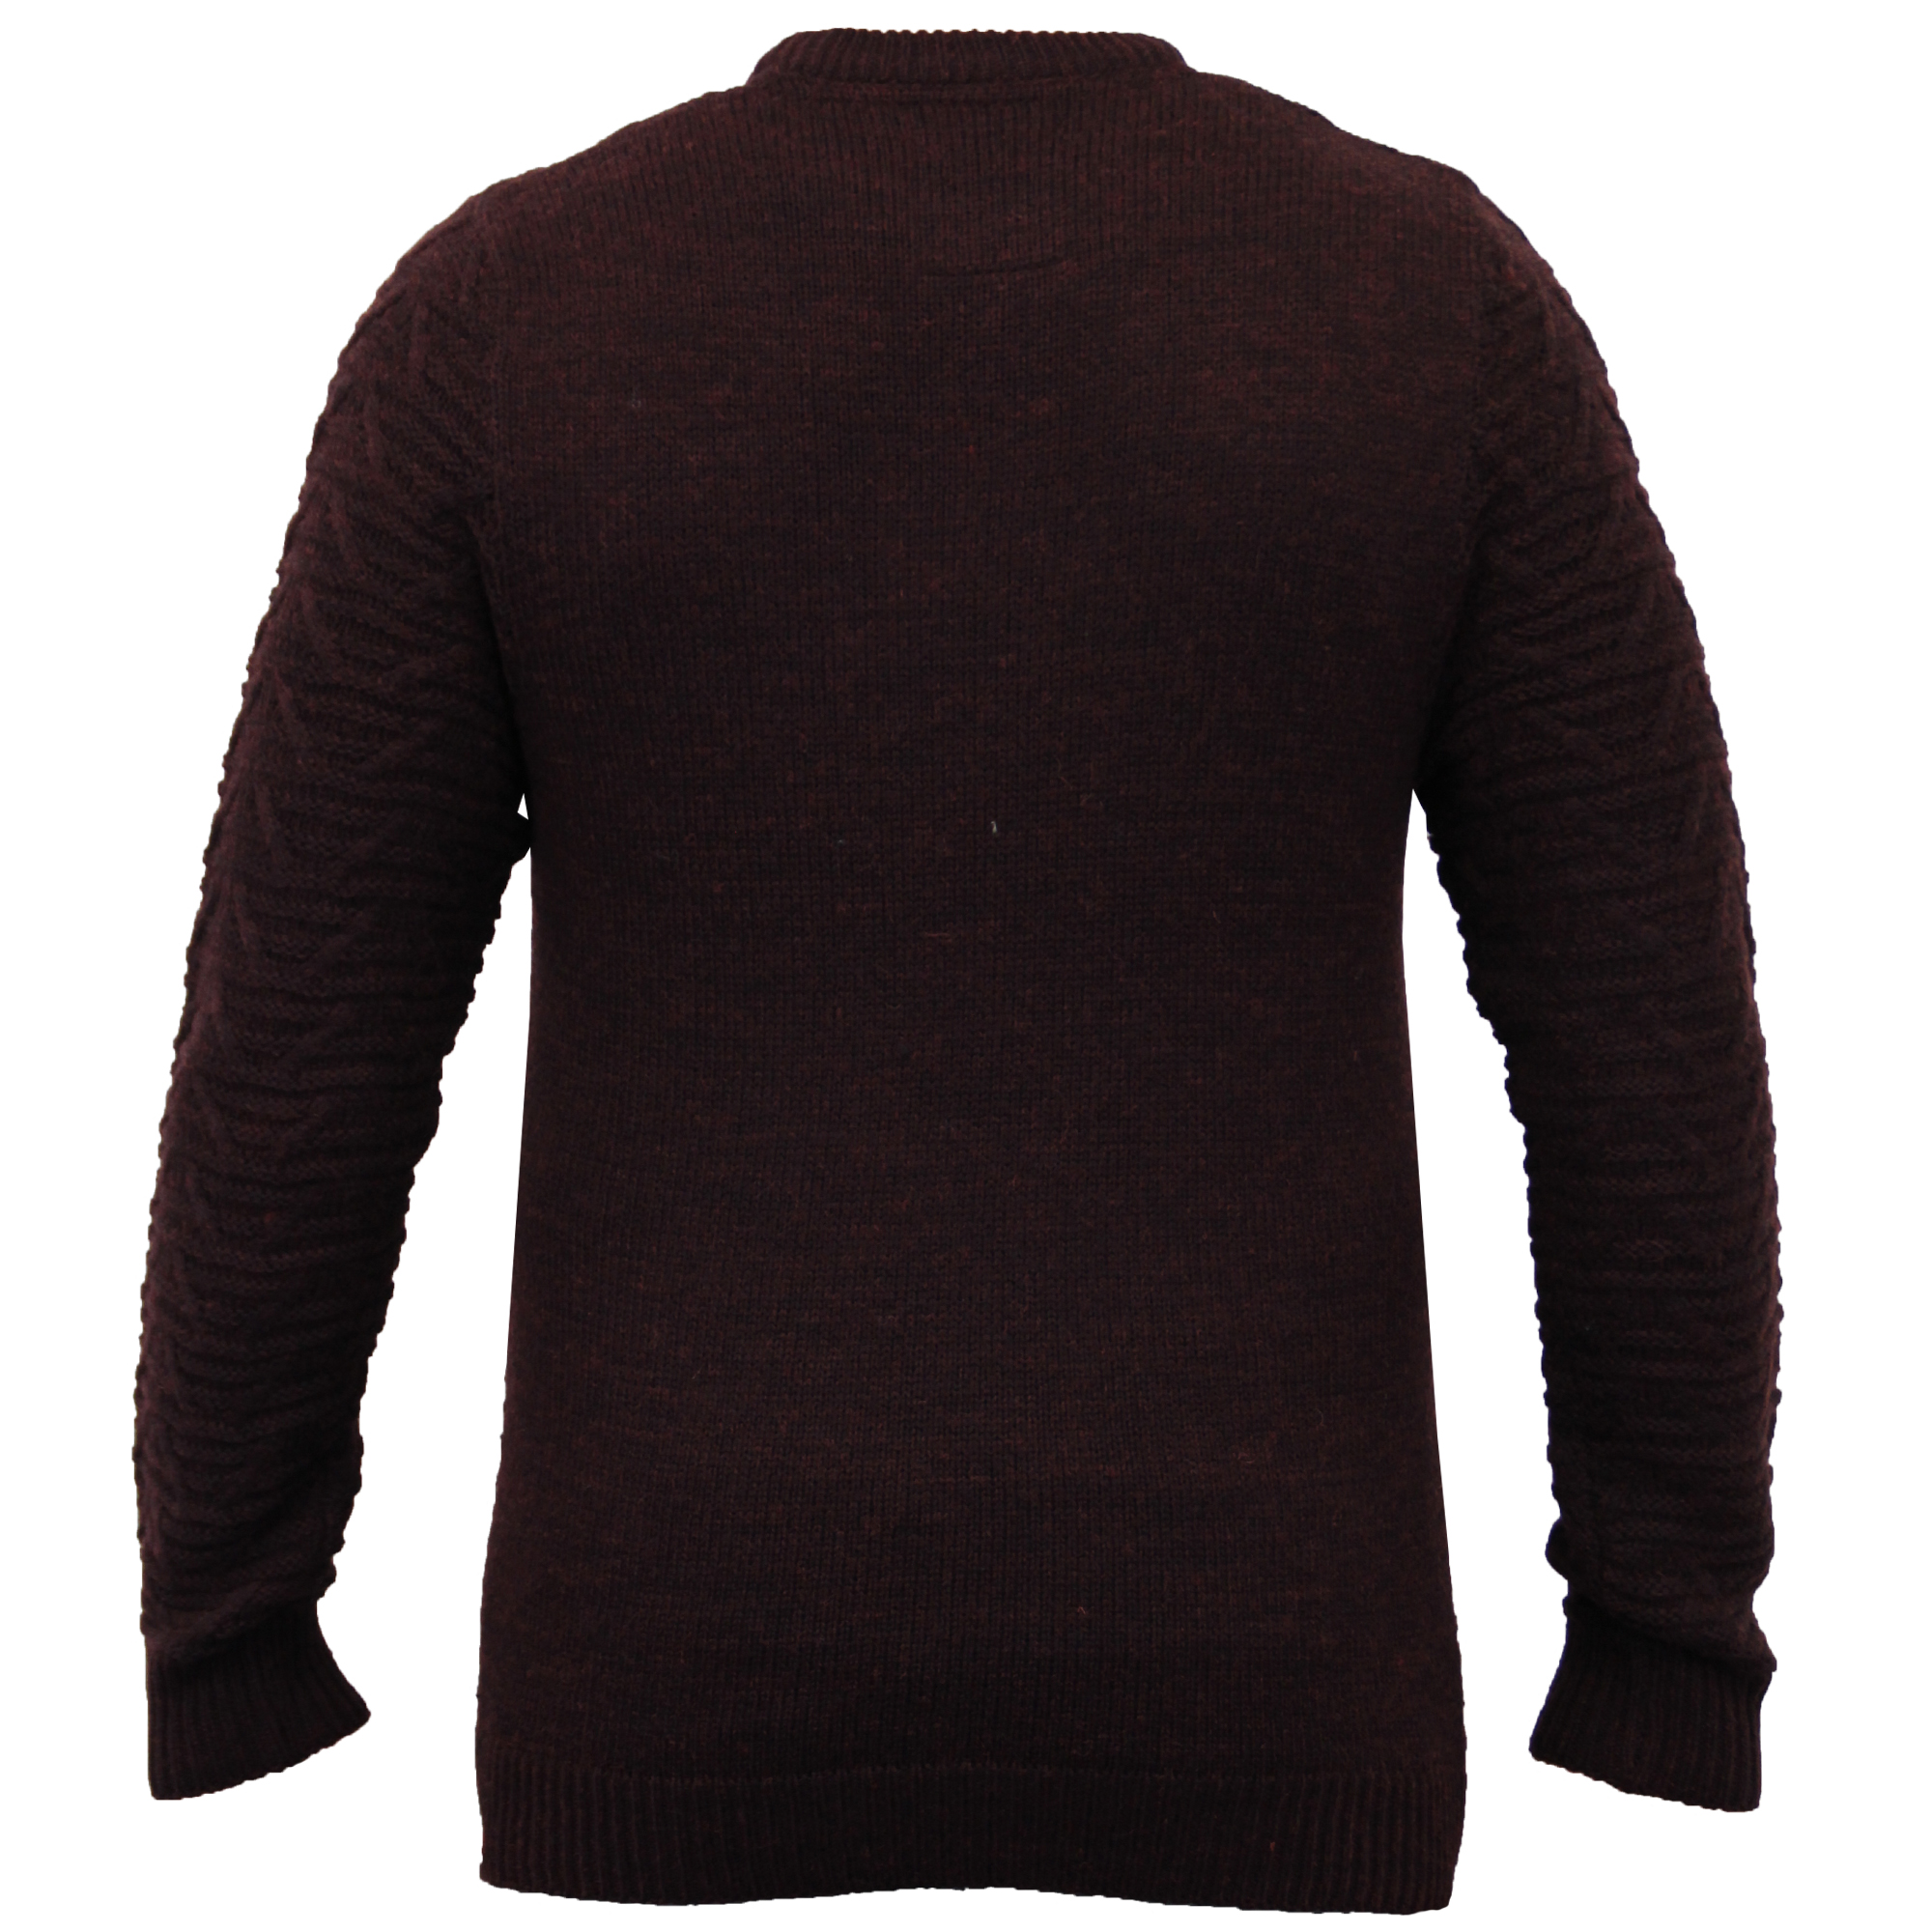 Mens Wool Mix Jumpers Threadbare Knitted Sweater Pullover ...